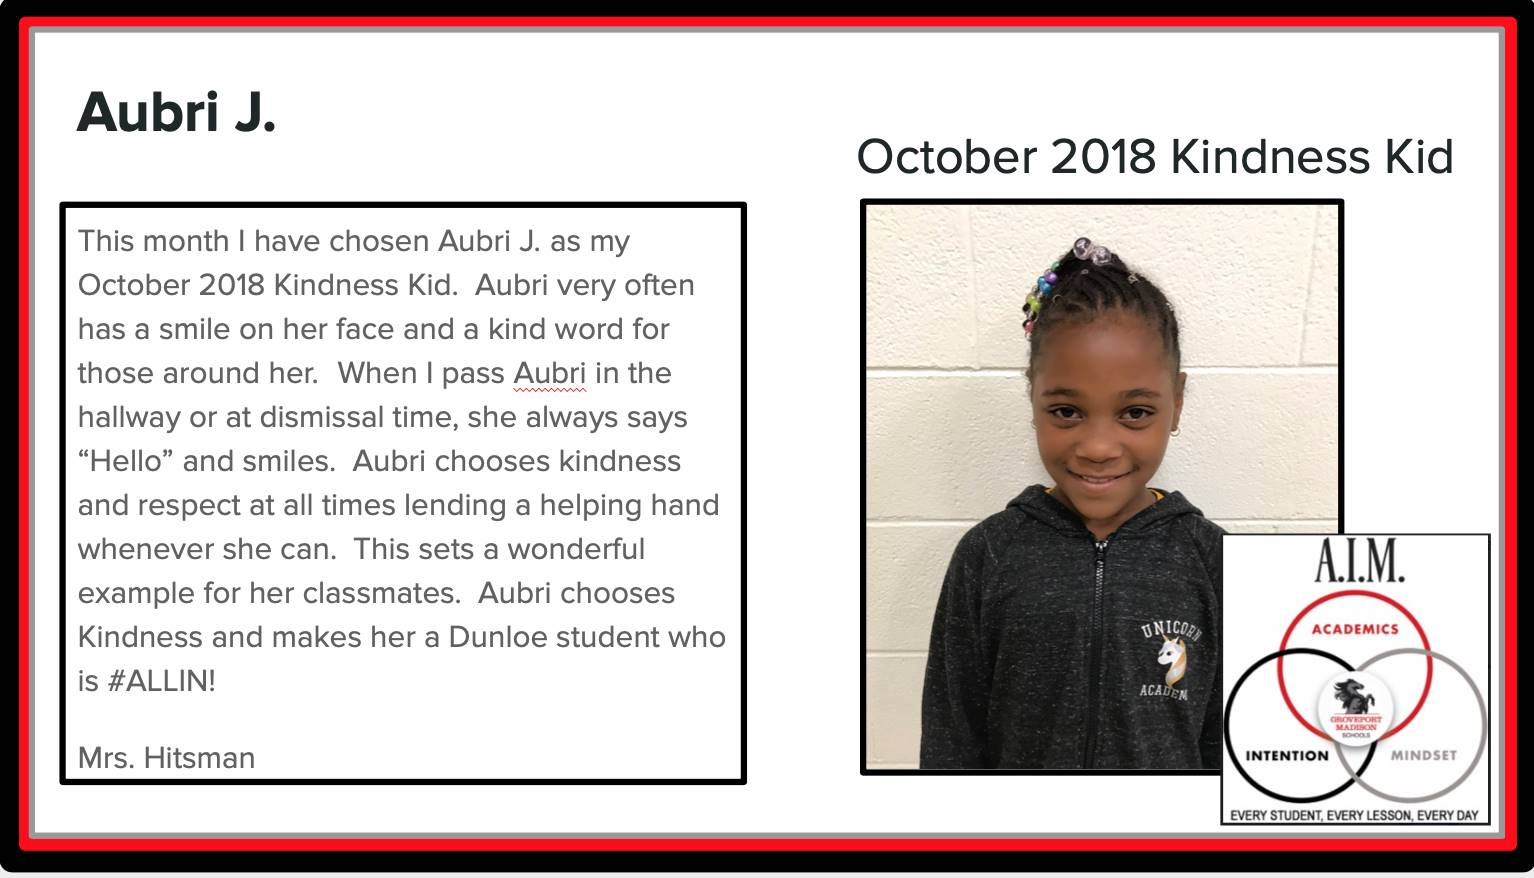 Kindness Kid Aubri